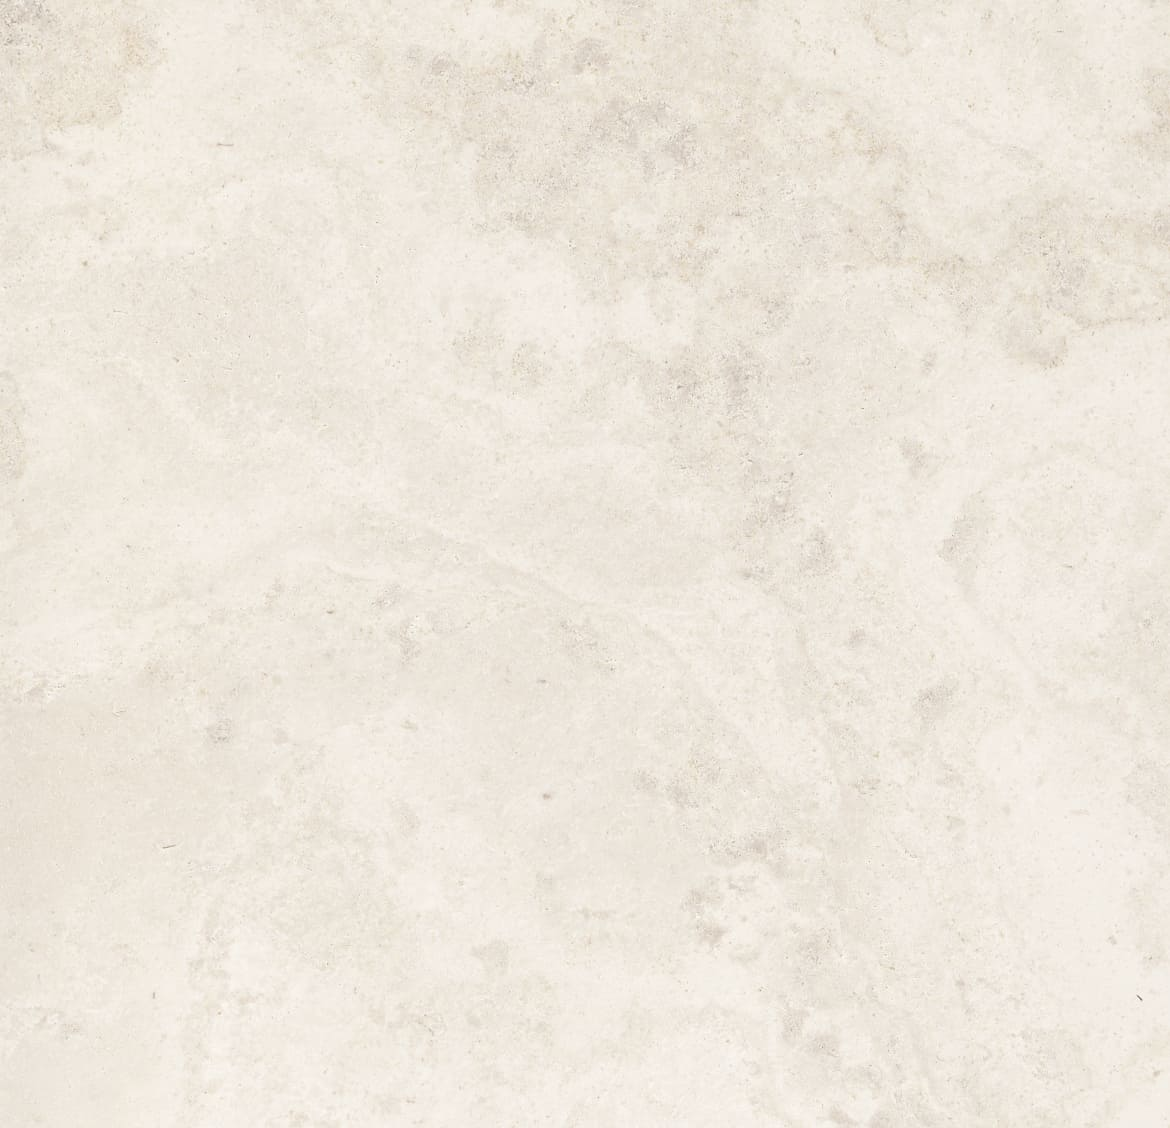 Off White Marble : Off white tiles texture pixshark images